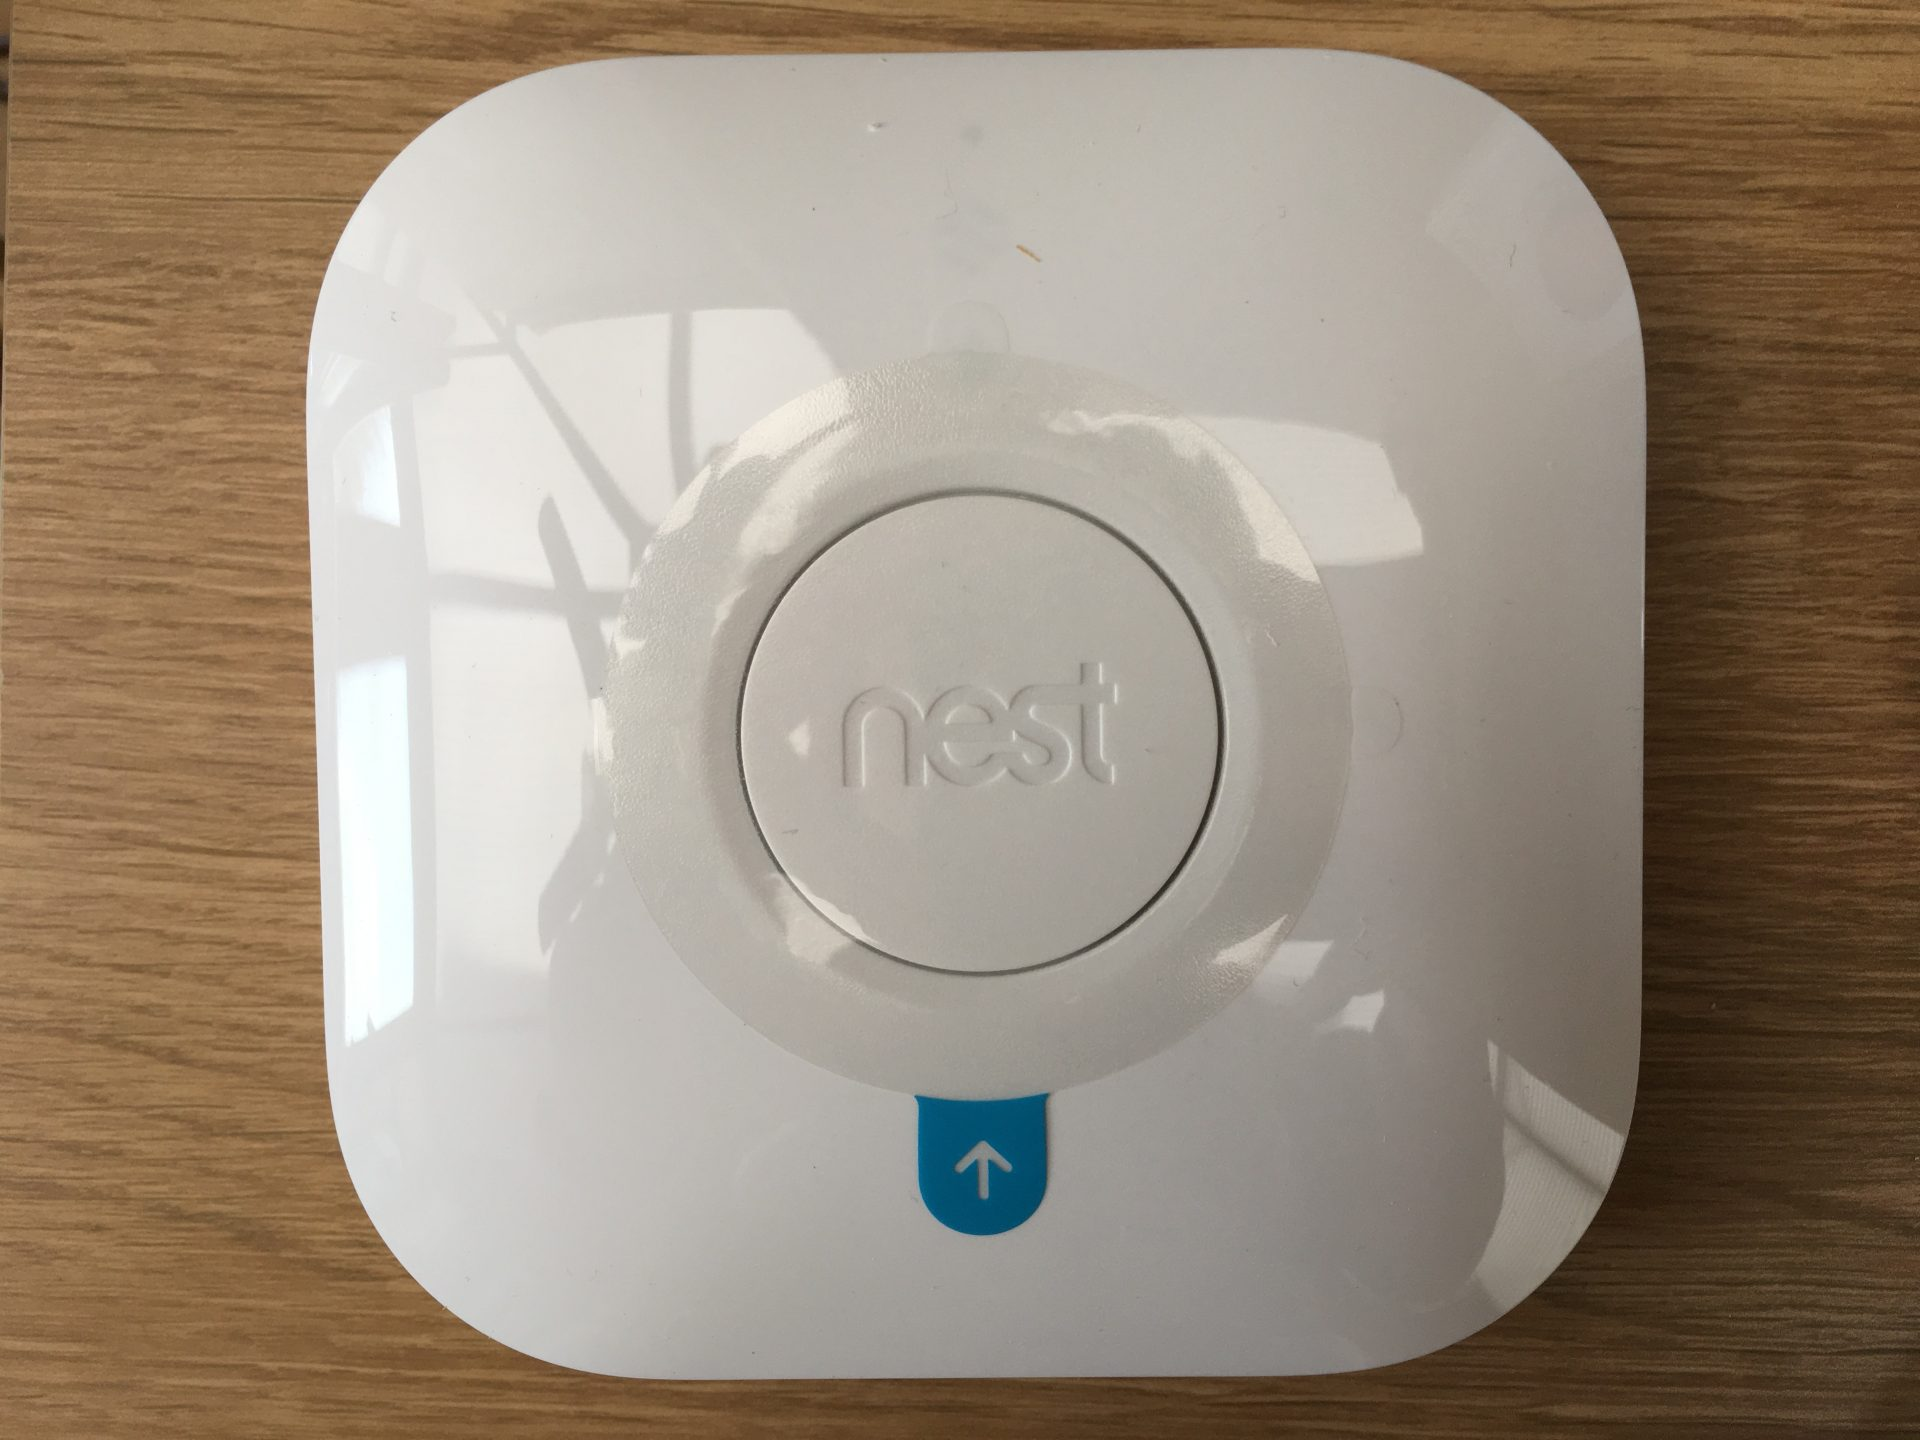 How to install the nest learning thermostat 3rd gen in a y plan nest heat link asfbconference2016 Choice Image